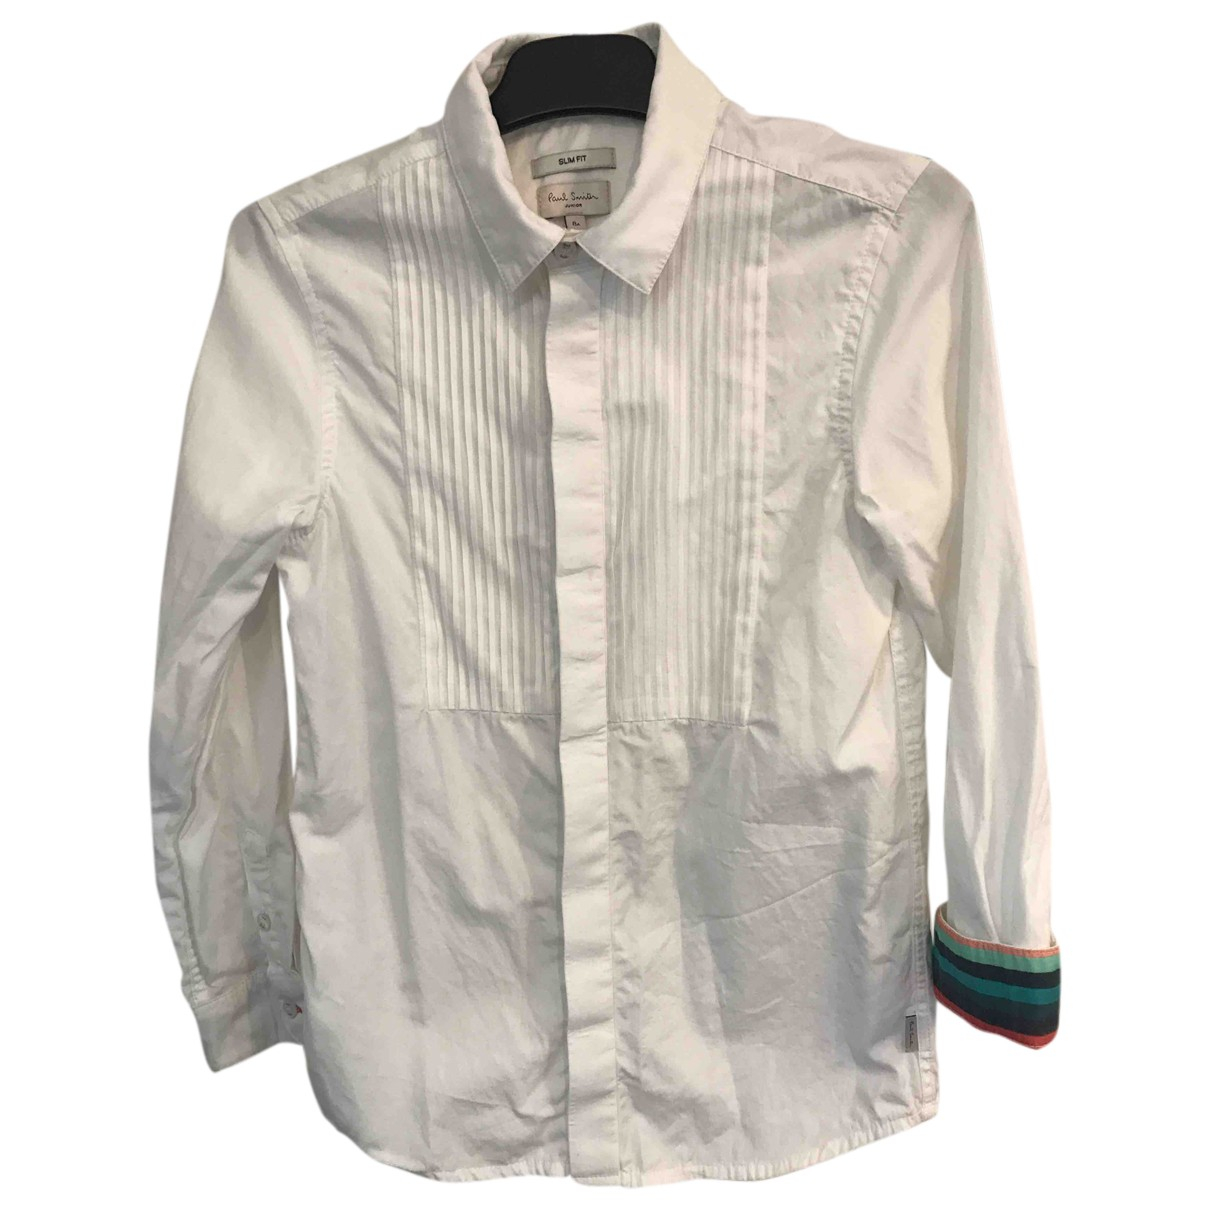 Paul Smith N White Cotton  top for Kids 8 years - up to 128cm FR